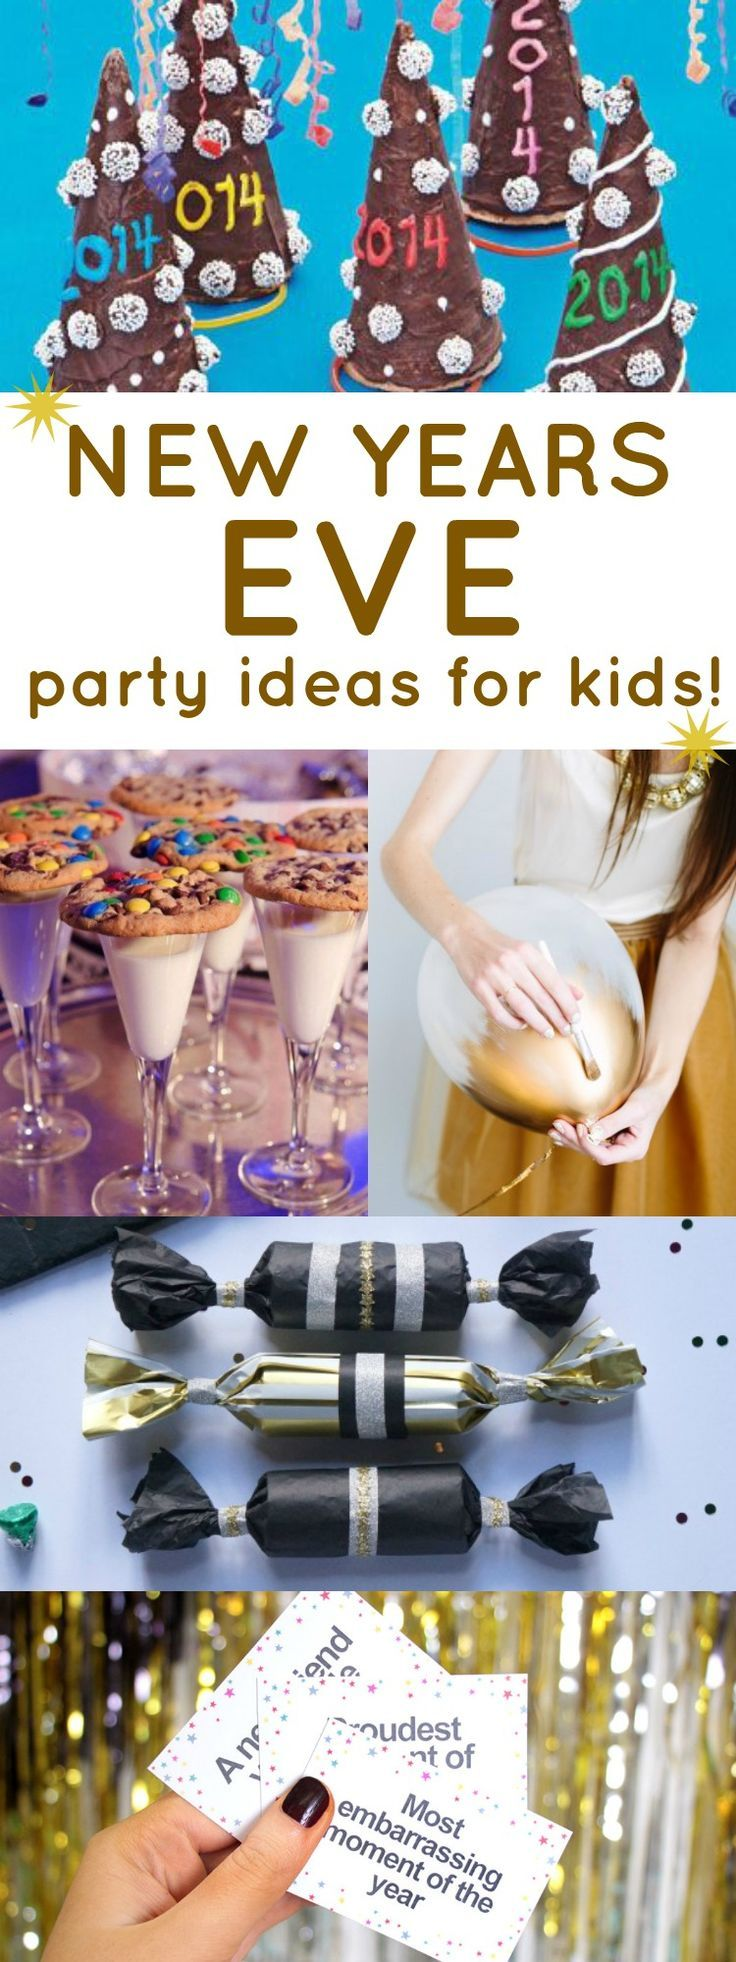 25 Fun New Years Eve Party Ideas for Kids You've Never ...